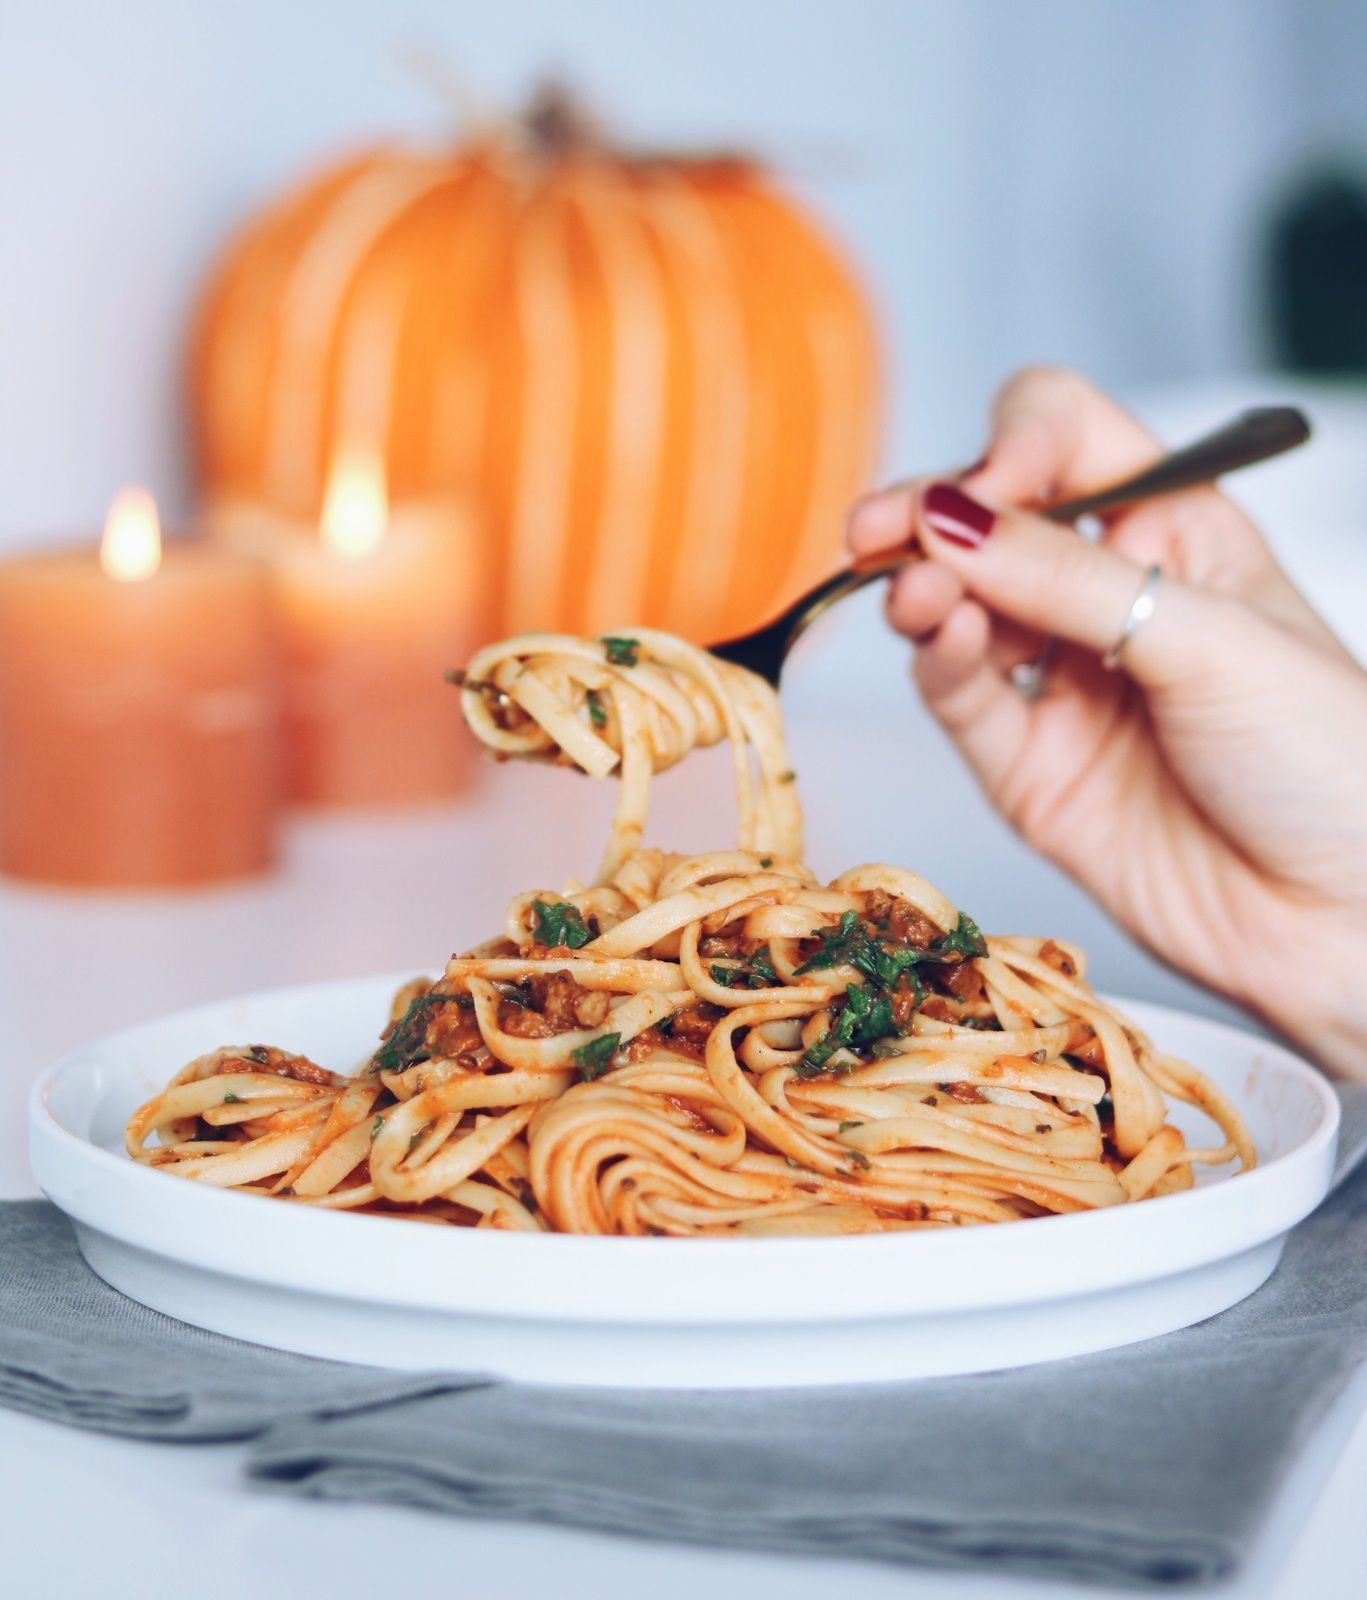 Pumpkin & Kale Pasta { VEGAN RECIPE }